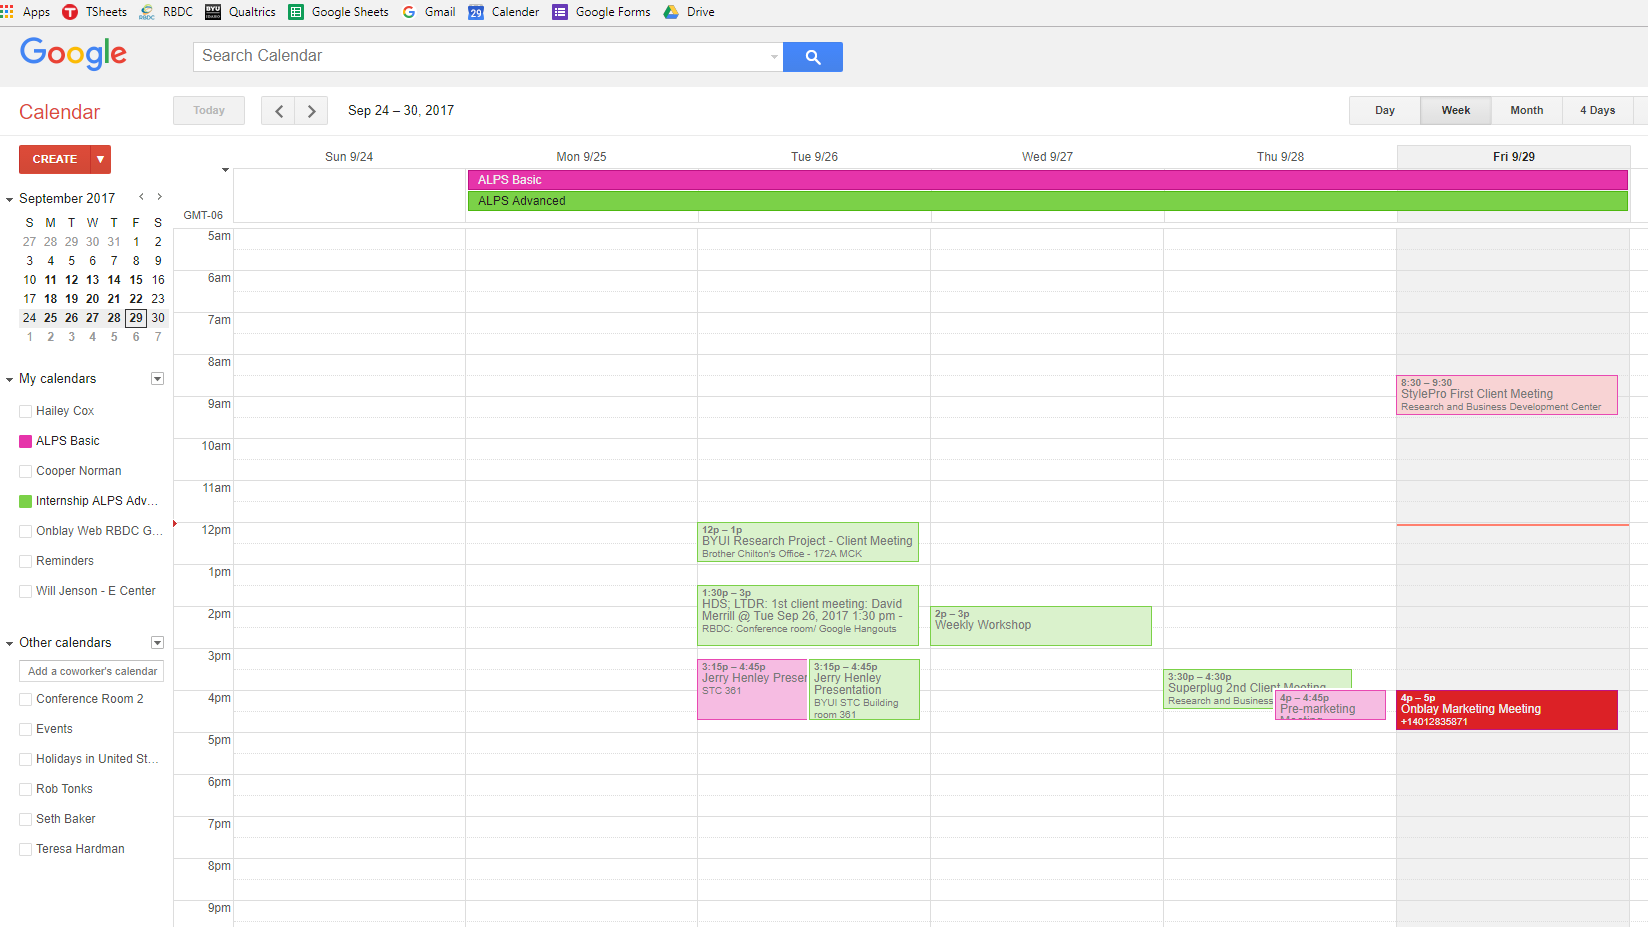 Project management utilize free resources drop expensive it requires a medium amount of training to get our interns using google calendar correctly there is however a lot of free training available online xflitez Images